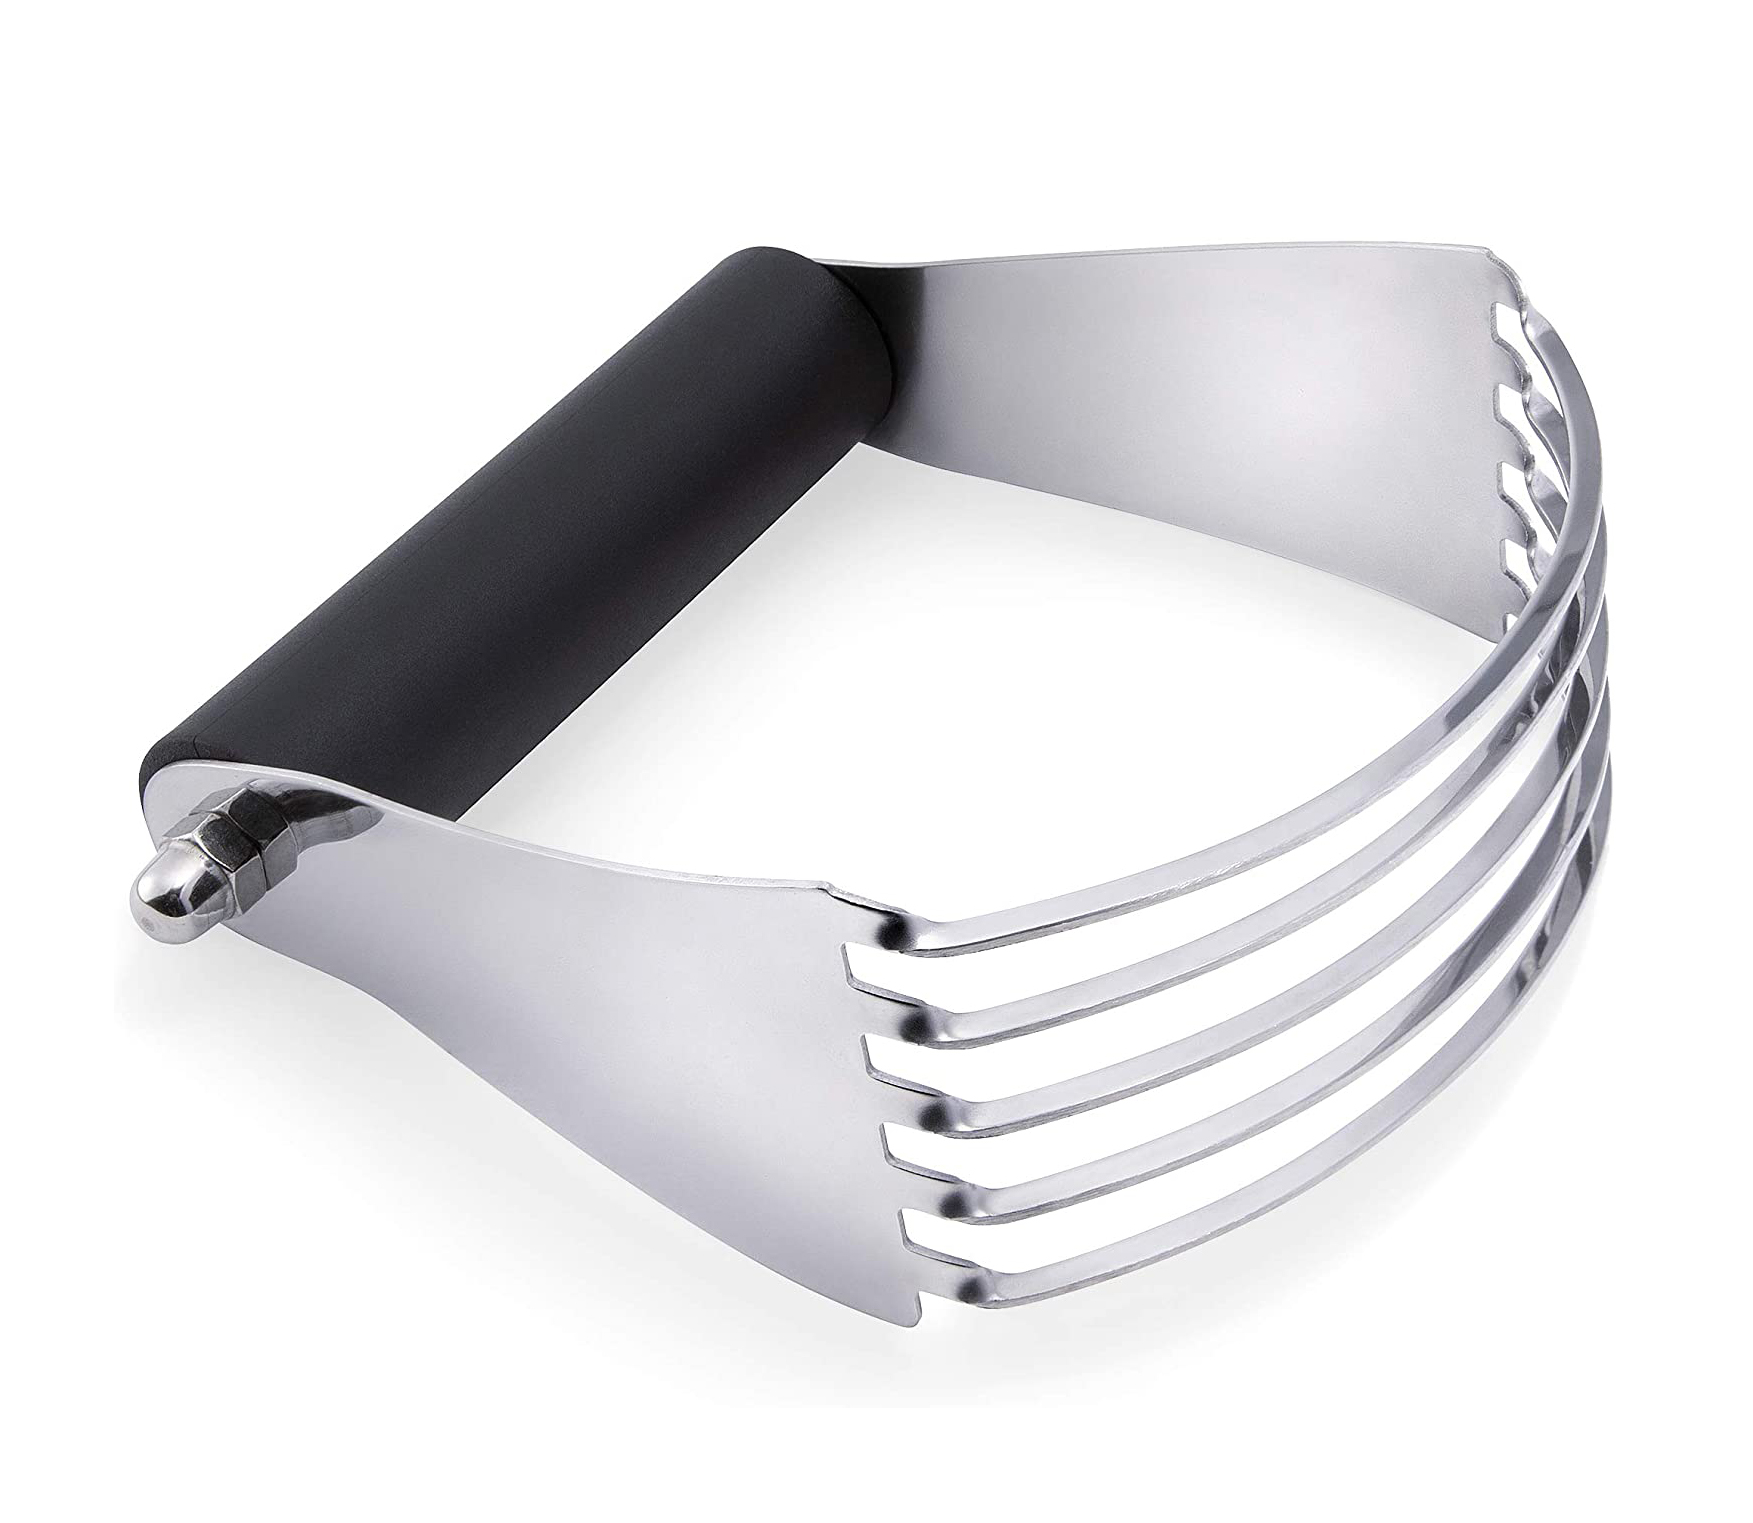 Spring Chef Pastry Cutter